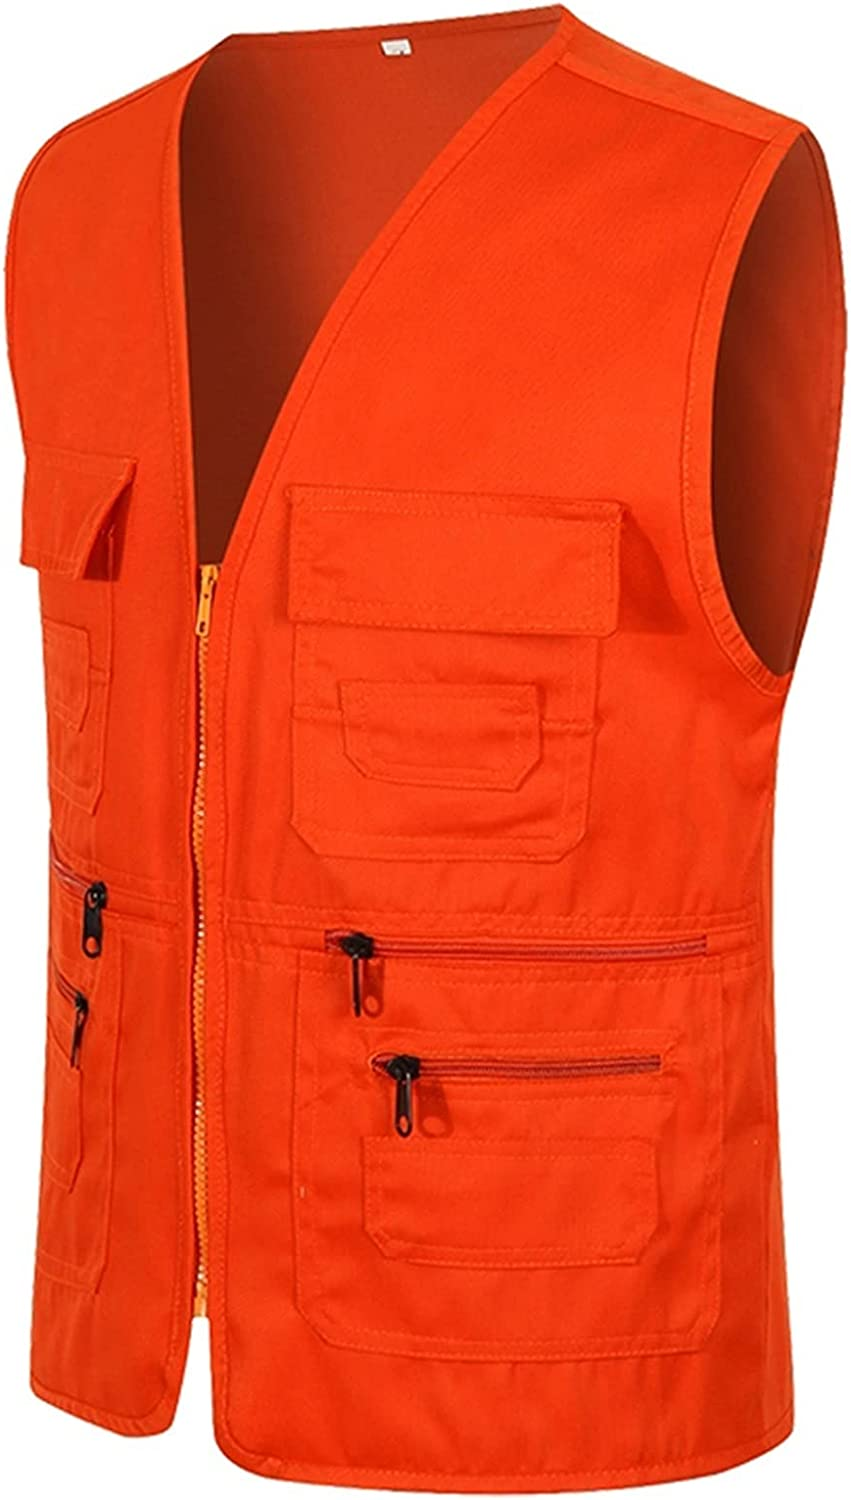 llddrz Fishing Vest 2021 spring and summer new Now free shipping Mens Waistcoa Multi-Pocketed Gilet Waistcoat